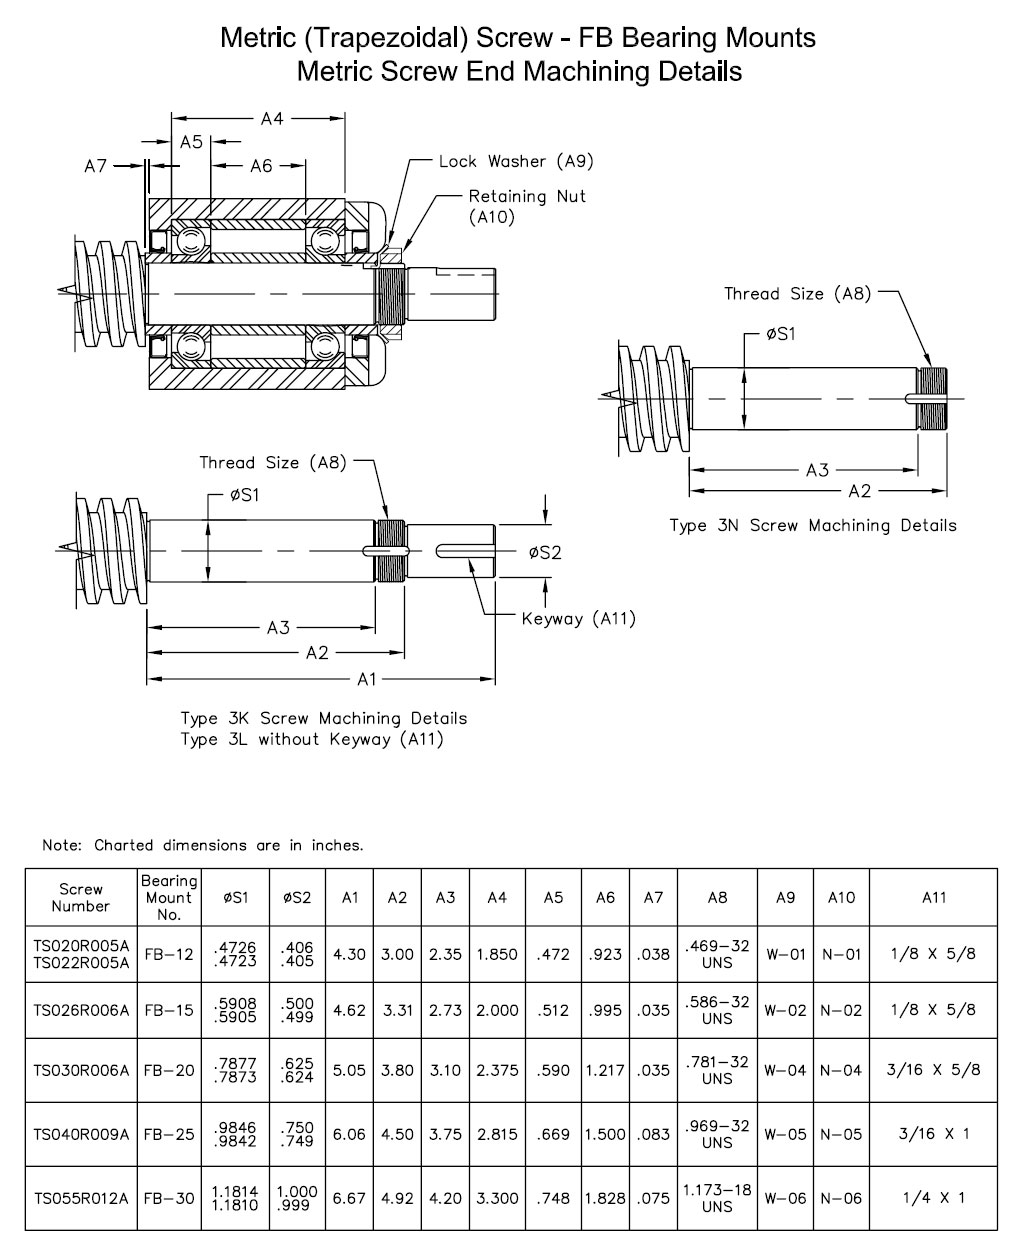 FB Bearing Blocks and Screw End Conditions